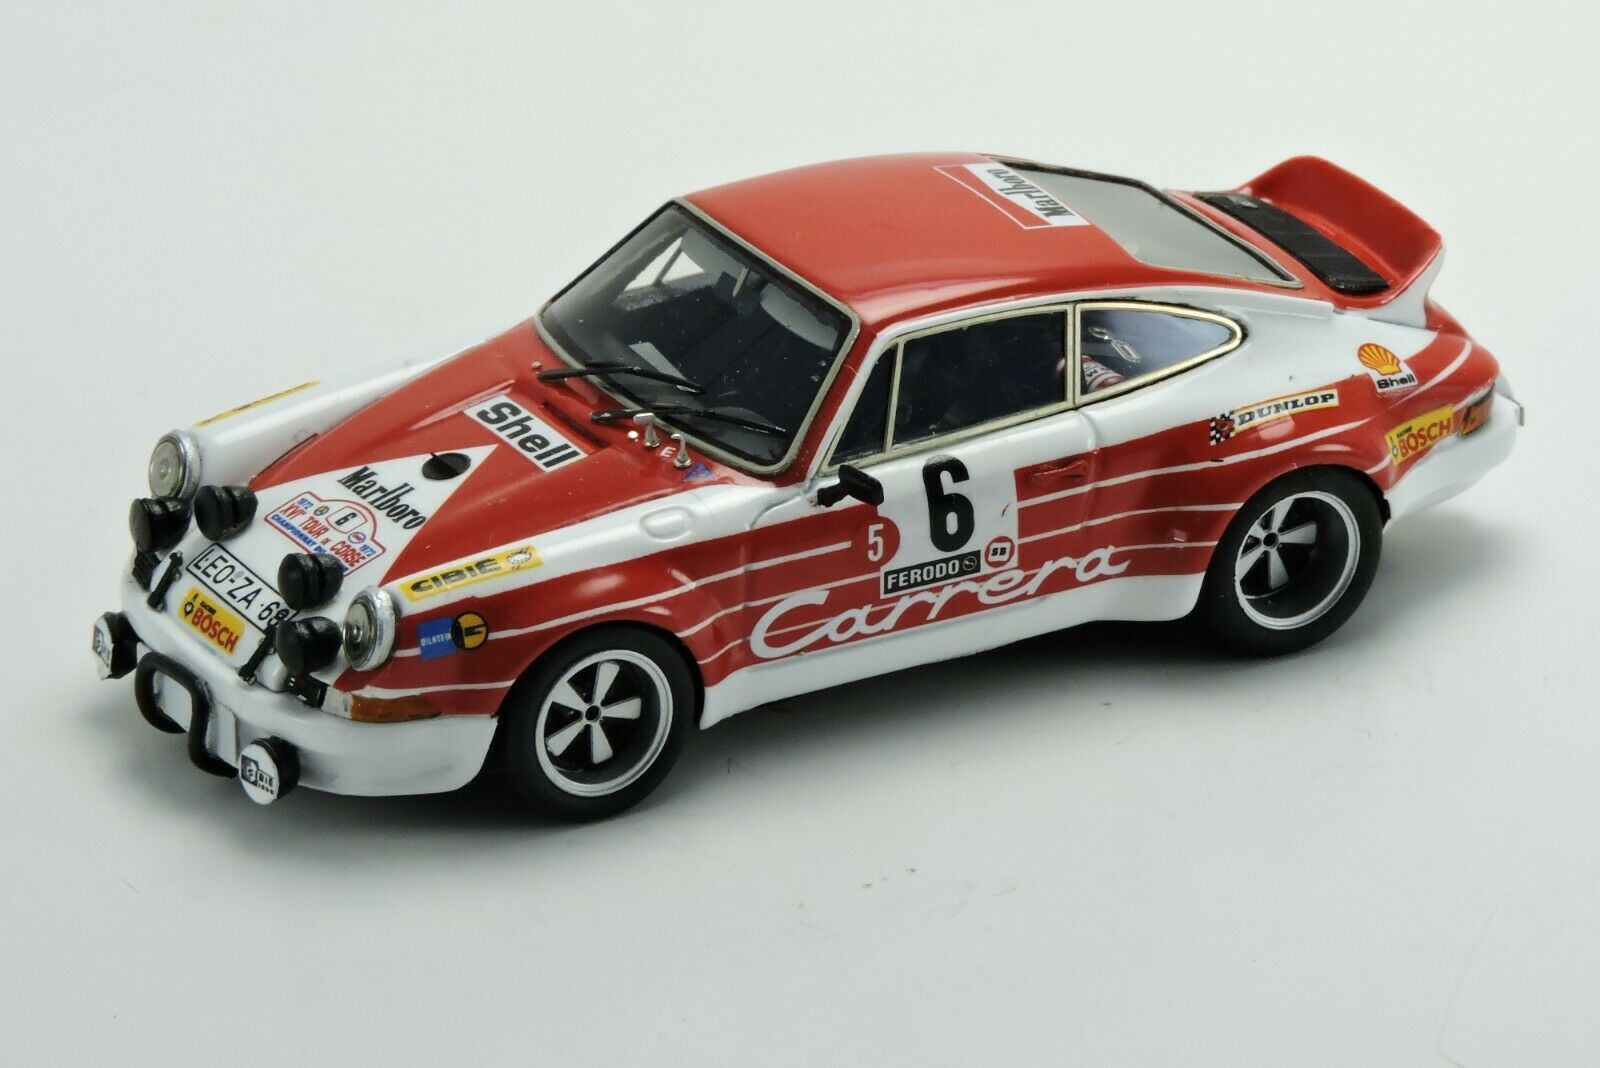 kit Porsche voiturerera 2,7 RS   6 Tour de Corse 1972 - Arena Models kit 1 43  magasin d'usine